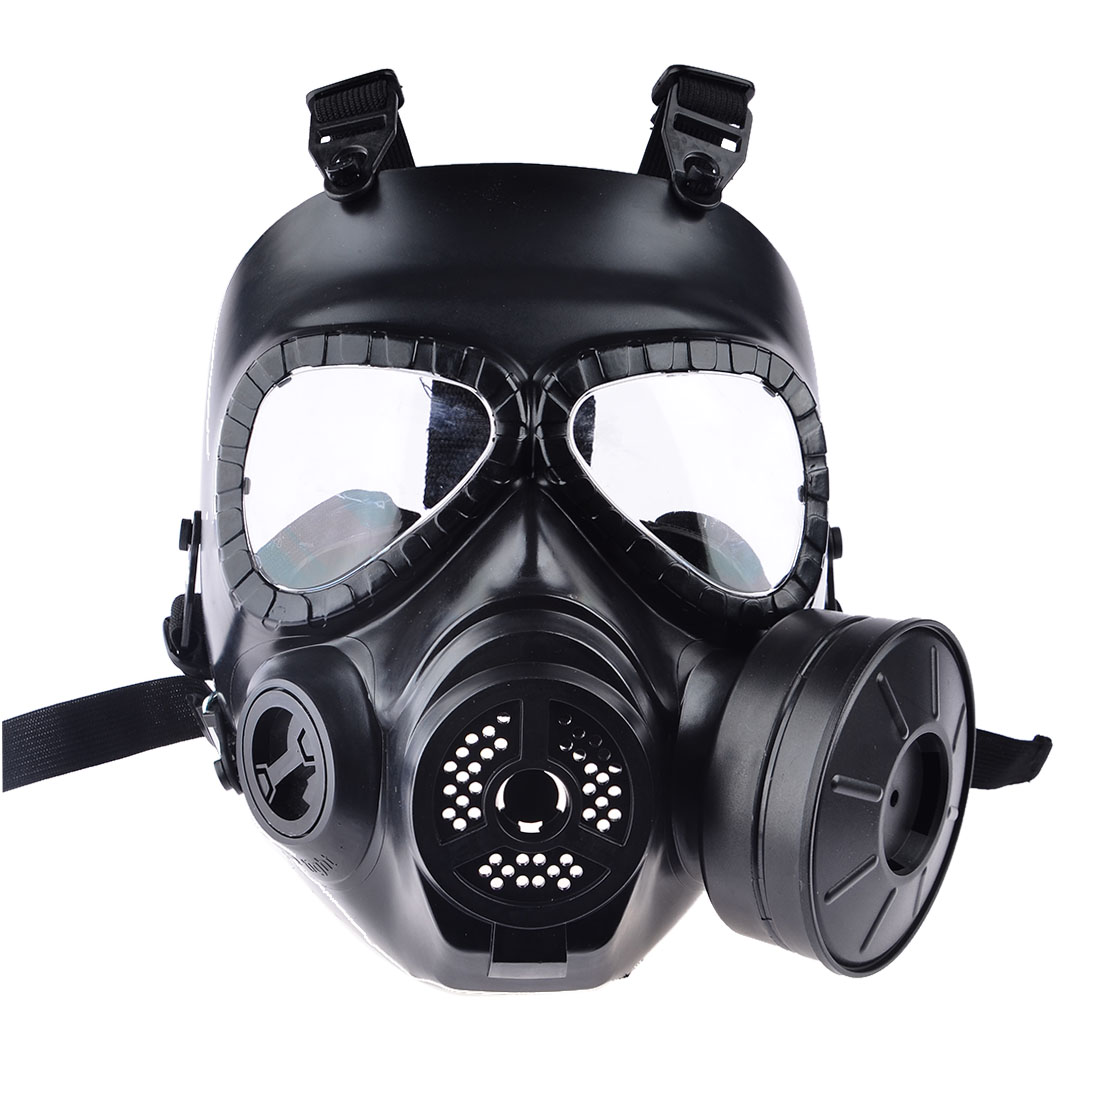 Hot CS Airsoft Paintball Dummy Gasmasker met Fan voor Cosplay bescherming Halloween Evil Antivirus Skull Festival Decor